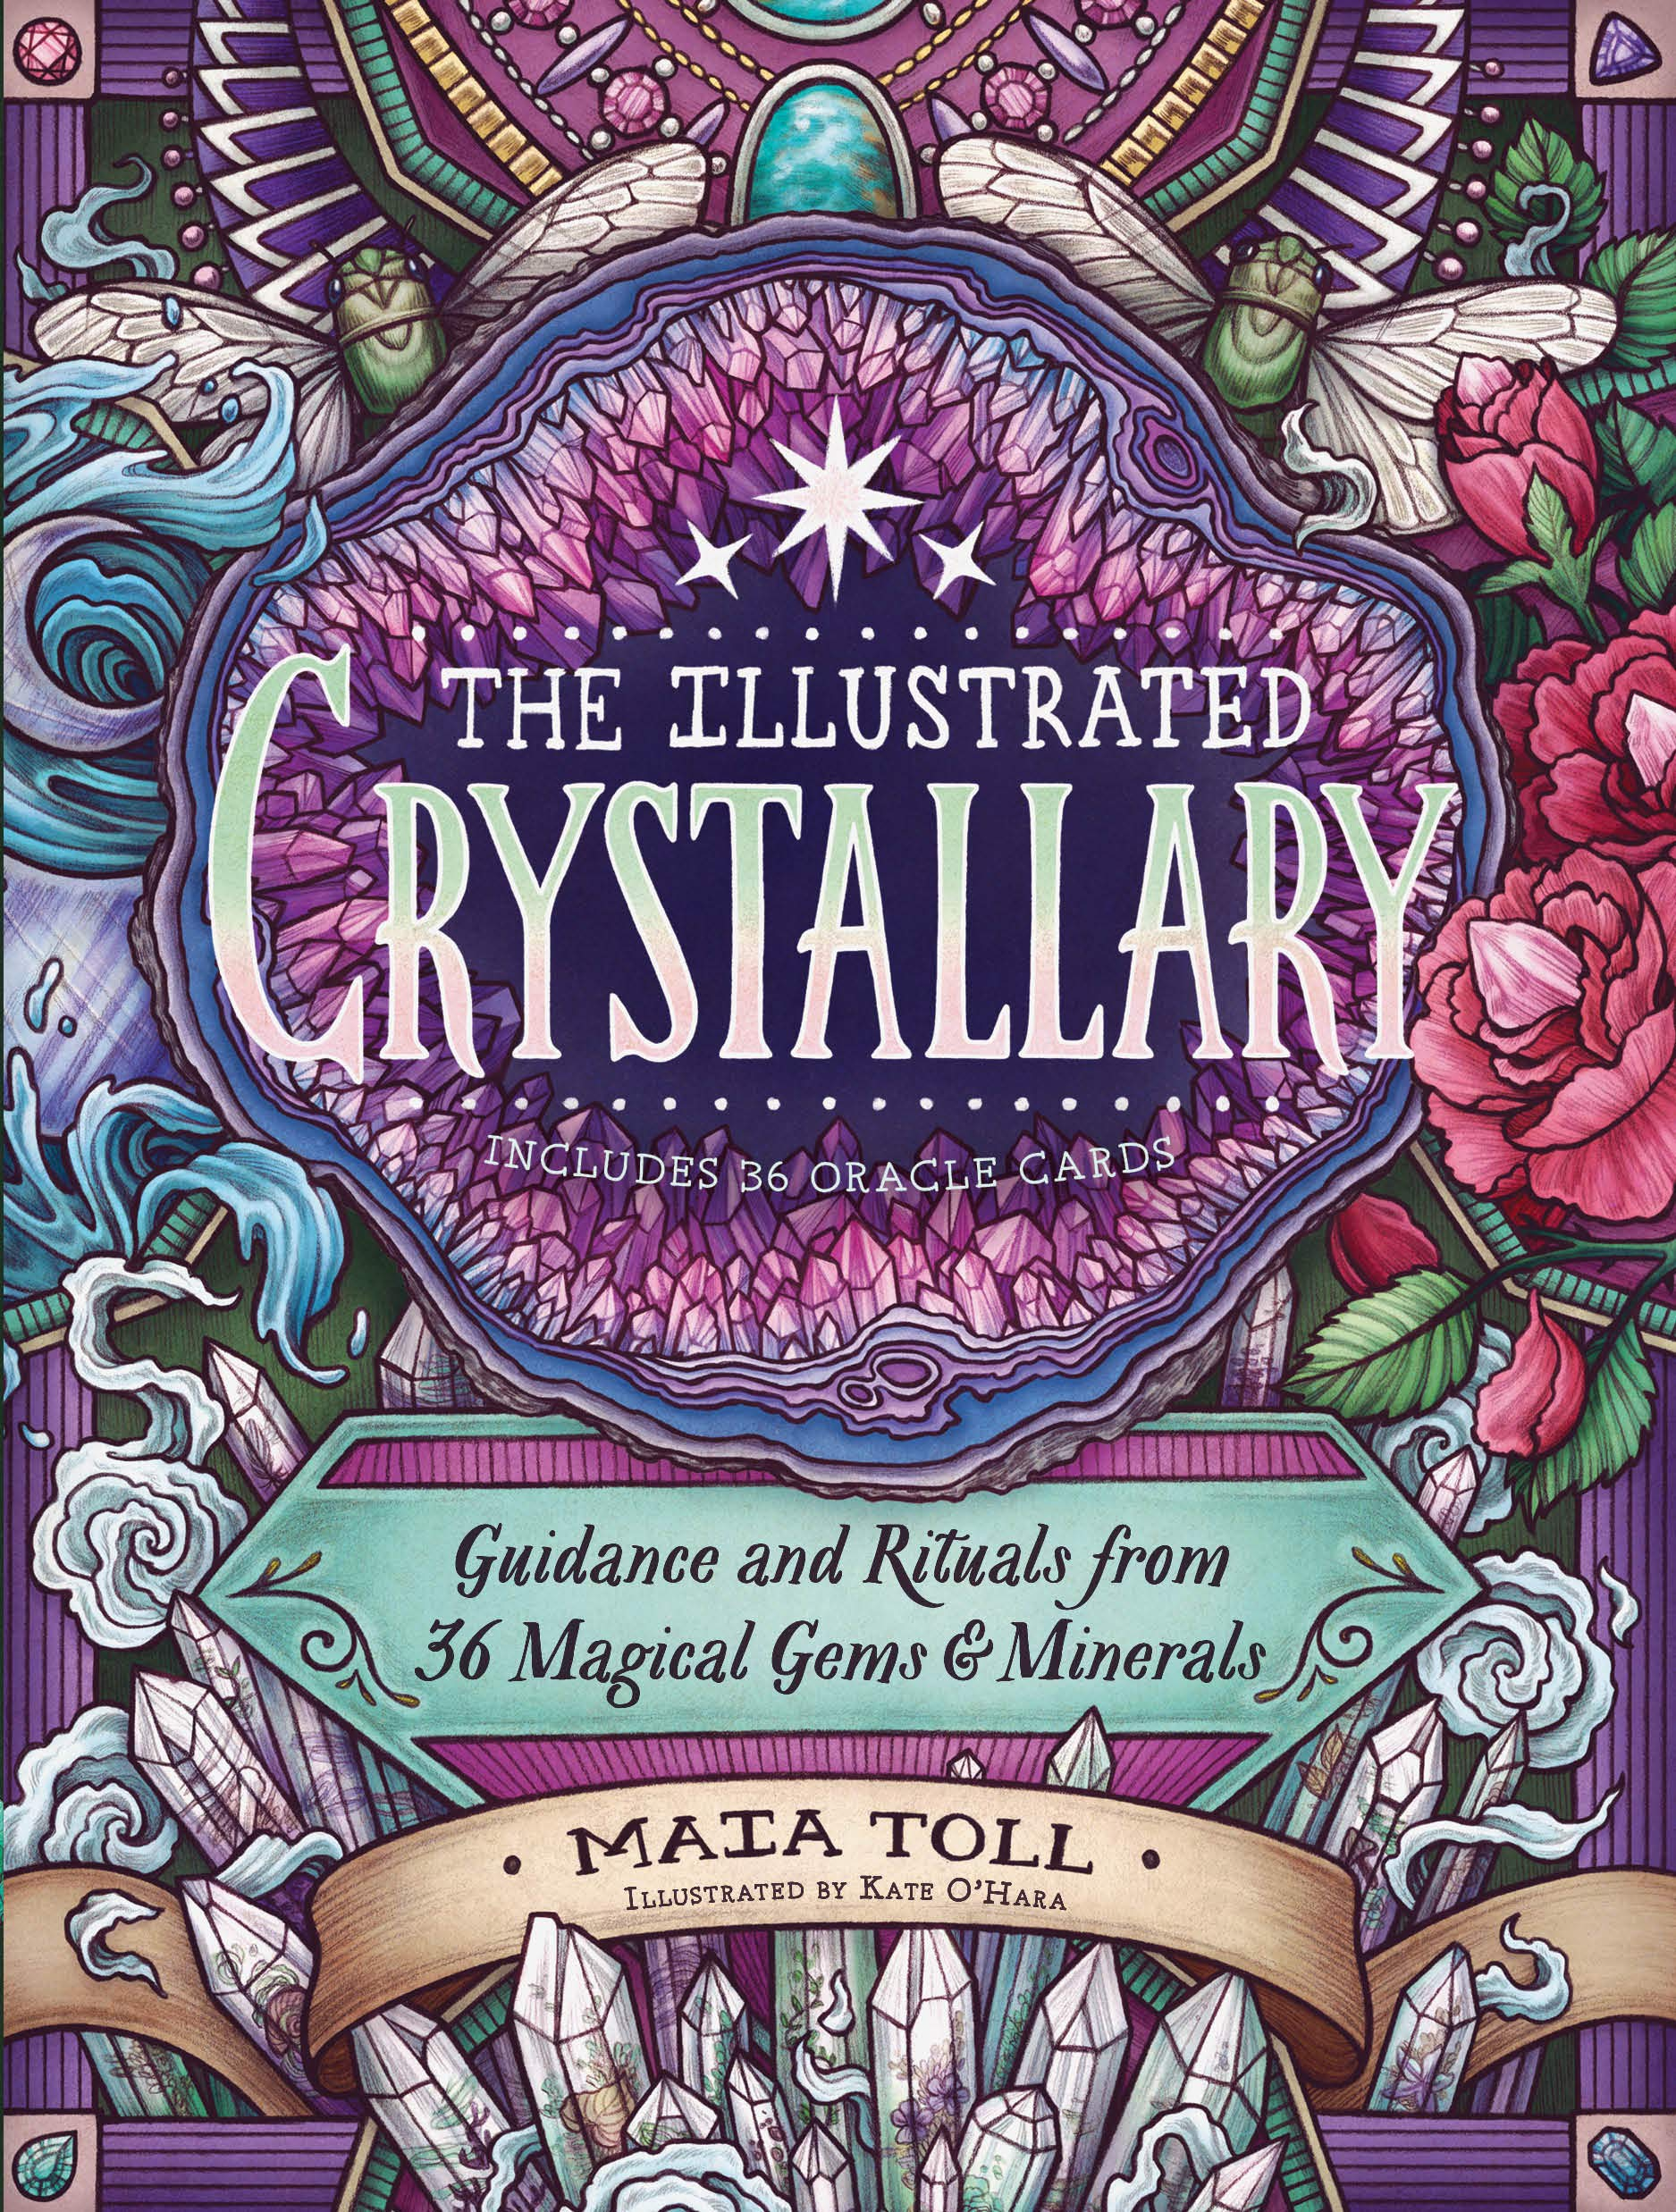 The Illustrated Crystallary Guidance And Rituals From 36 Magical Gems Minerals Wild Wisdom Toll Maia O Hara Kate 9781635862225 Amazon Com Books Many plants have changed and developed in ways (d) _. the illustrated crystallary guidance